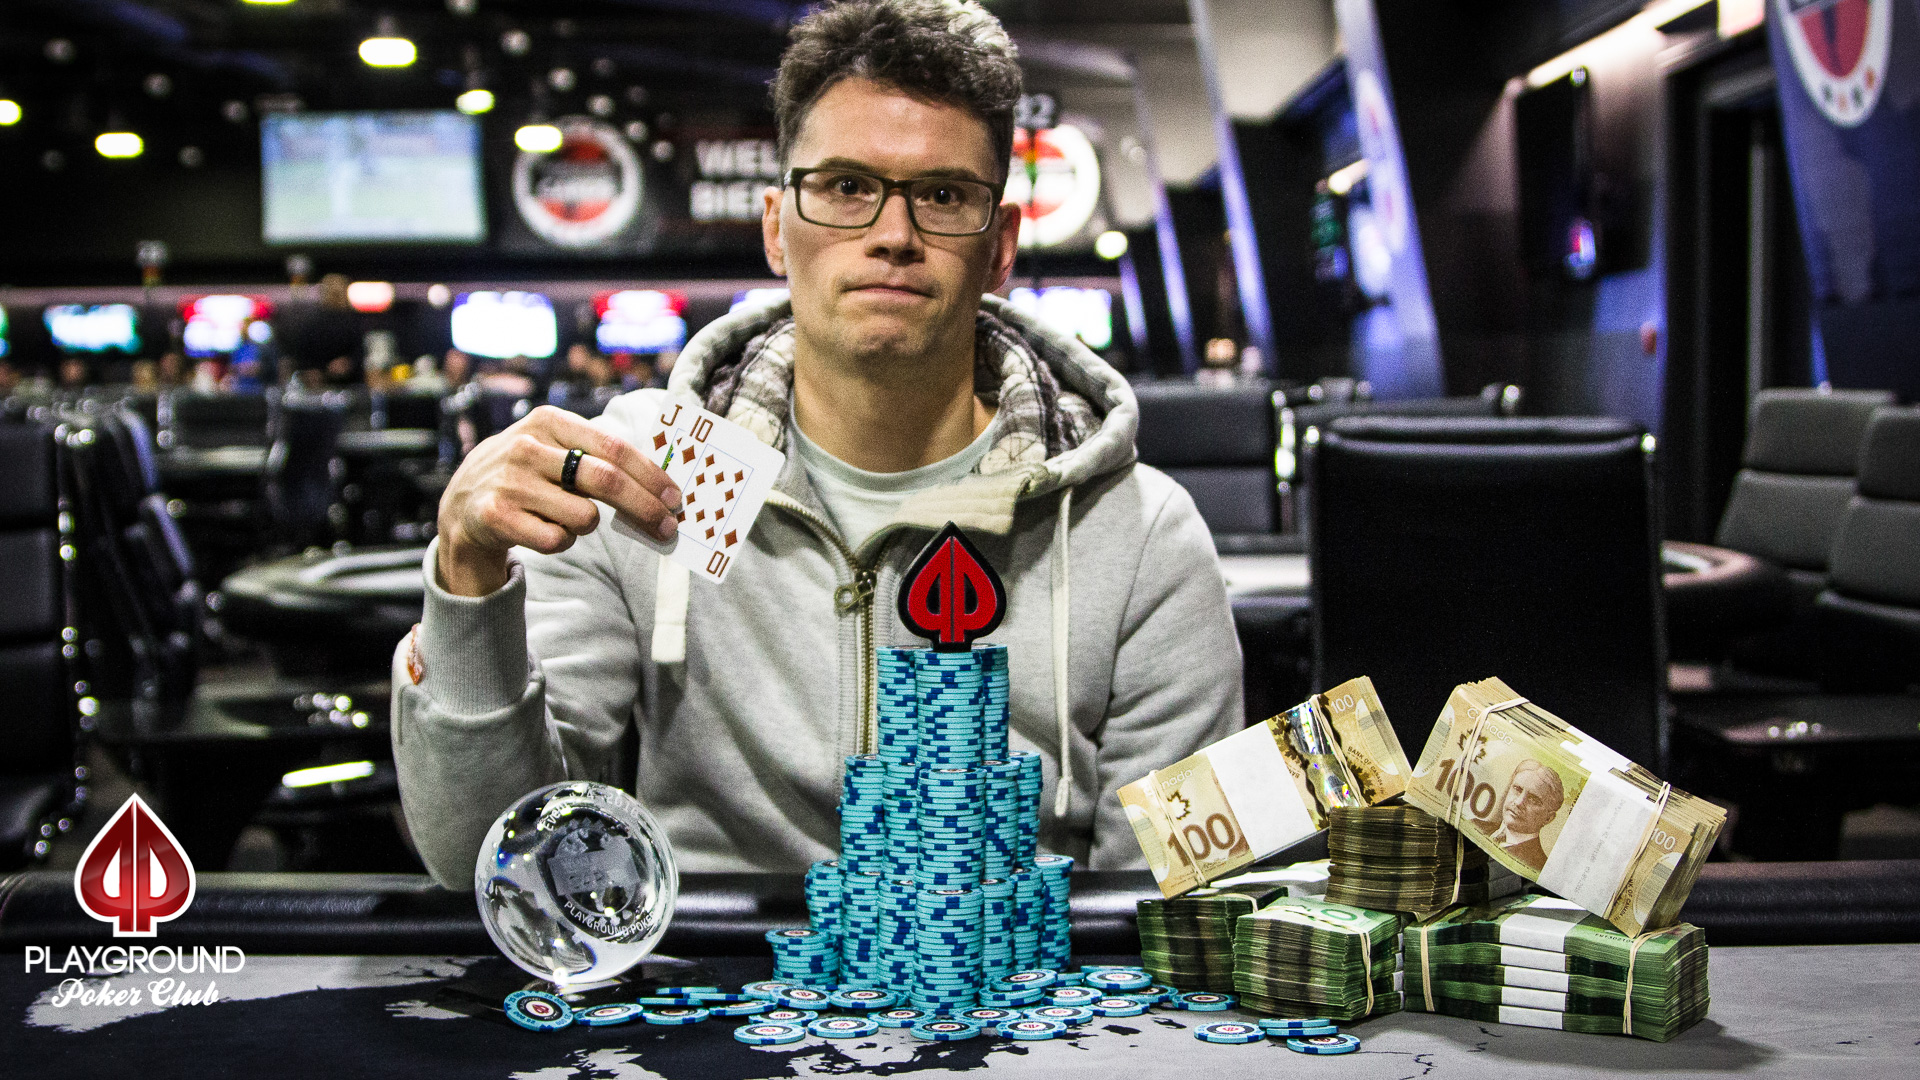 Brady Hinnegan wins the CPPT World Cup of Cards